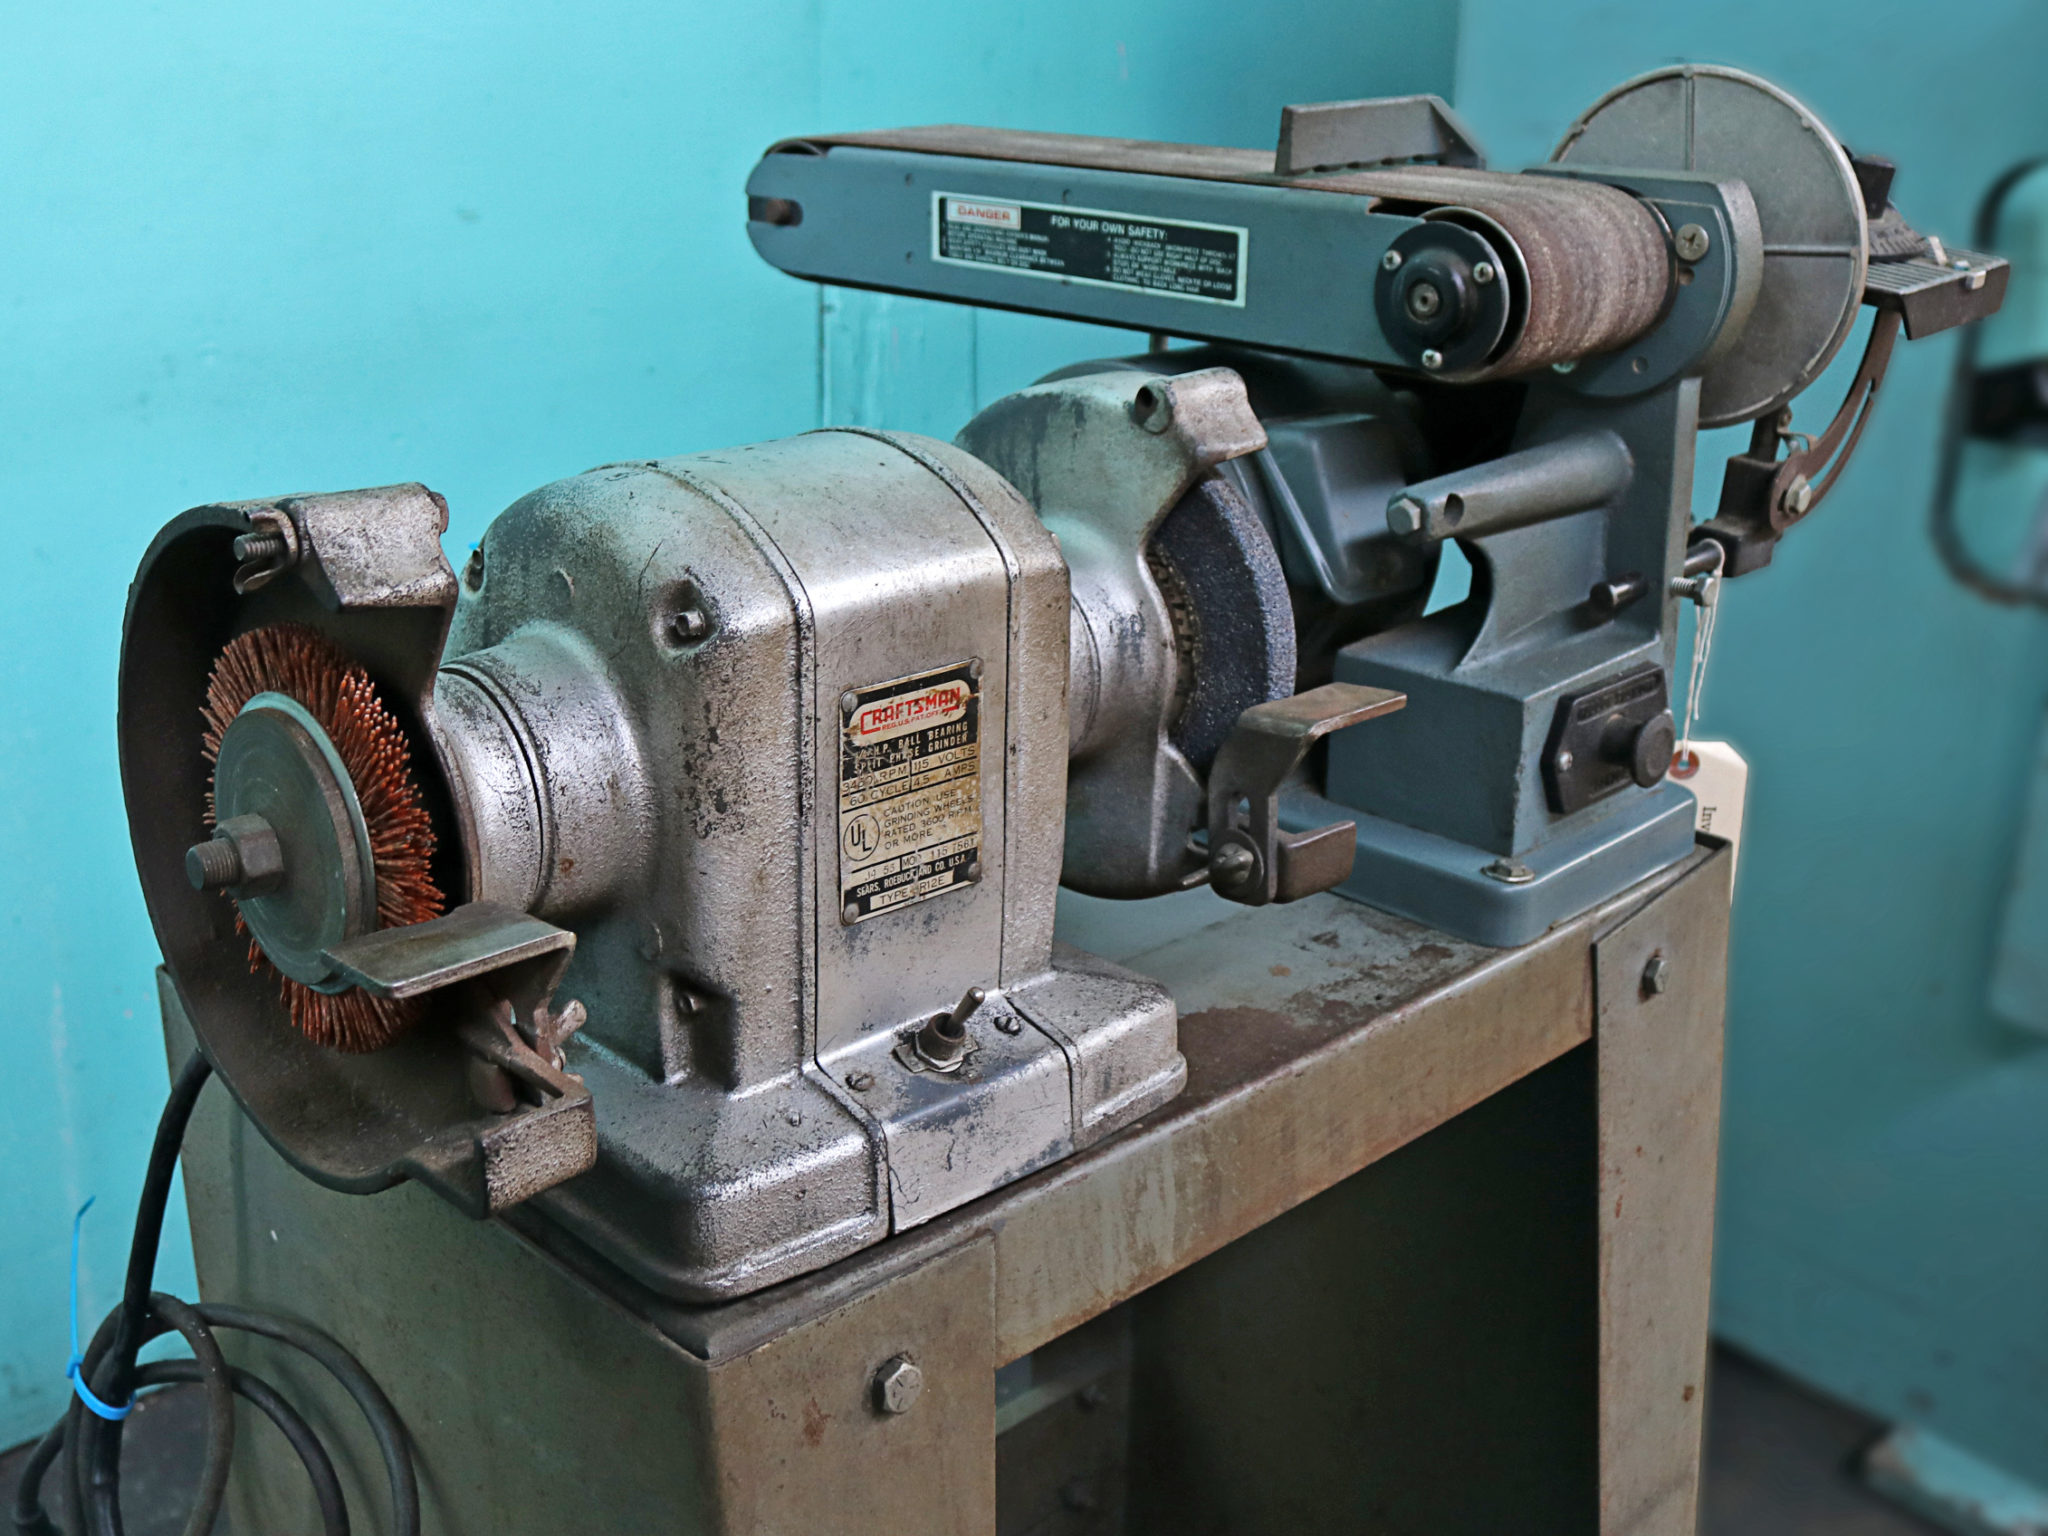 Groovy Enco Belt Disc Sander And Craftsman Buffer Grinder Caraccident5 Cool Chair Designs And Ideas Caraccident5Info